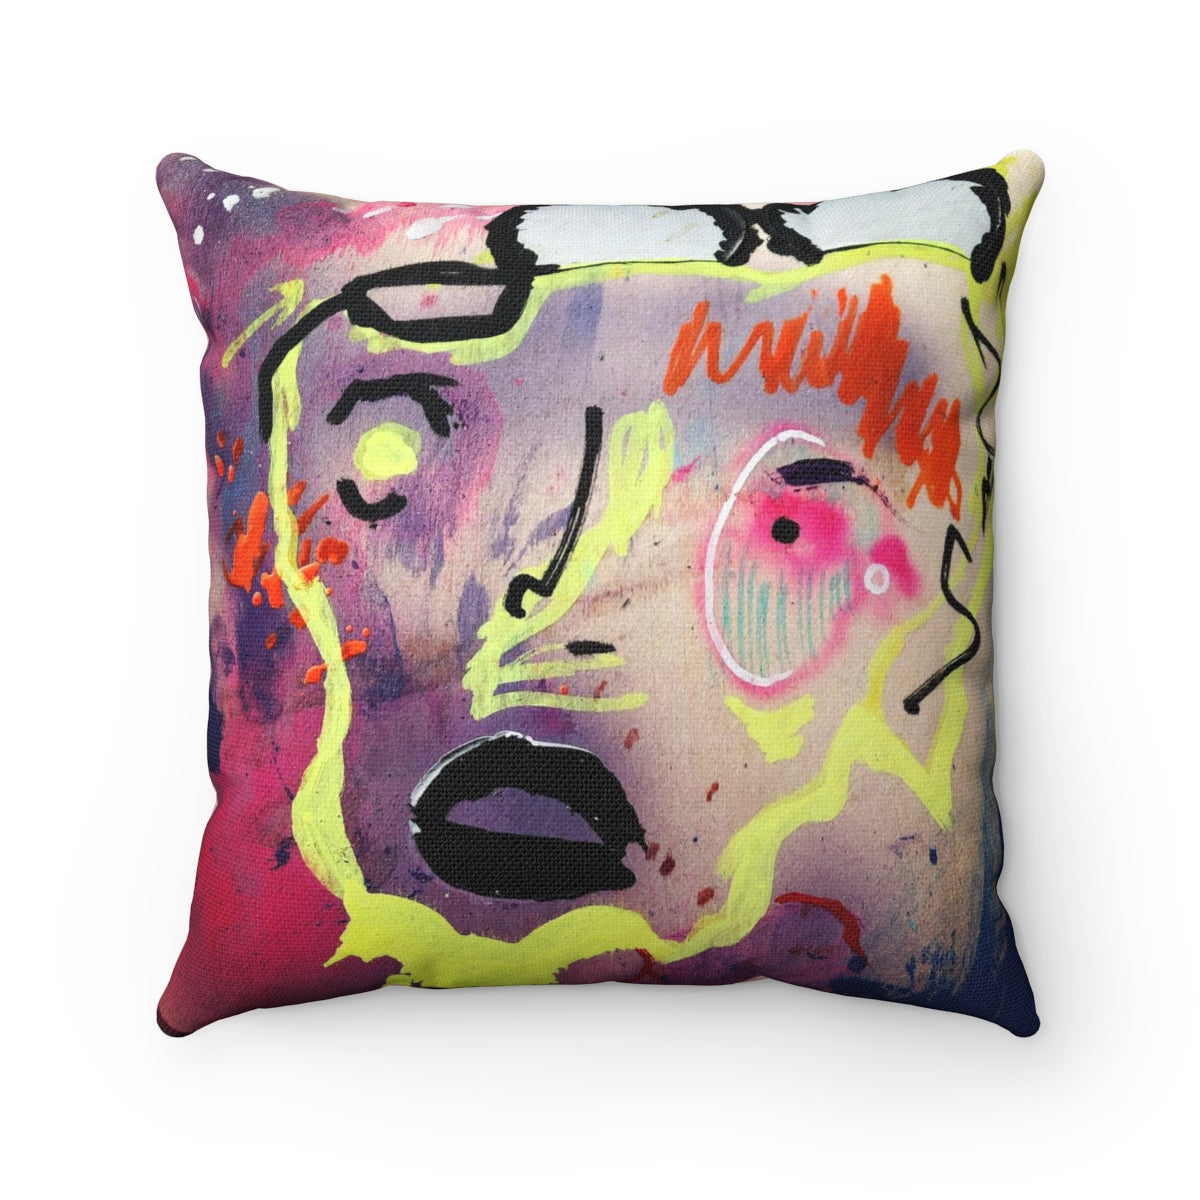 Back to Self Polyester Pillow